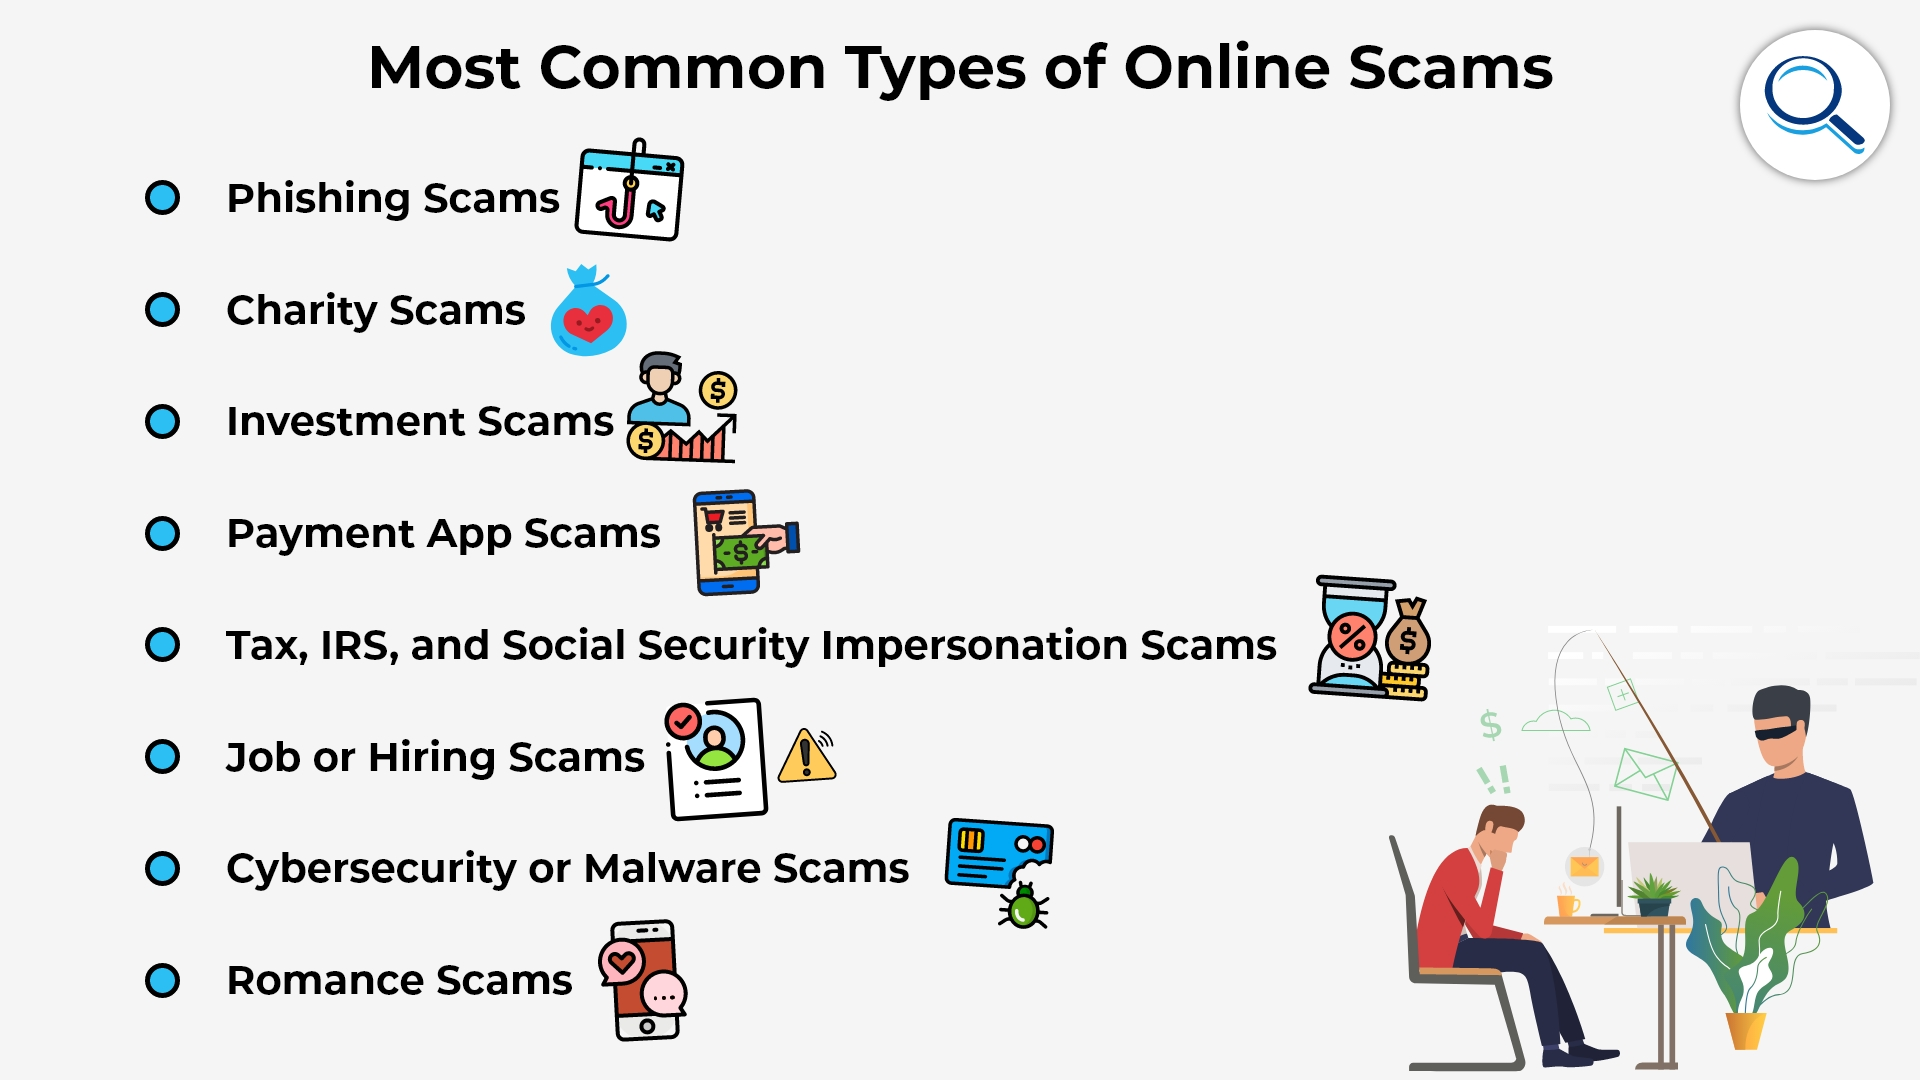 The Most Common Internet Scams in 2020